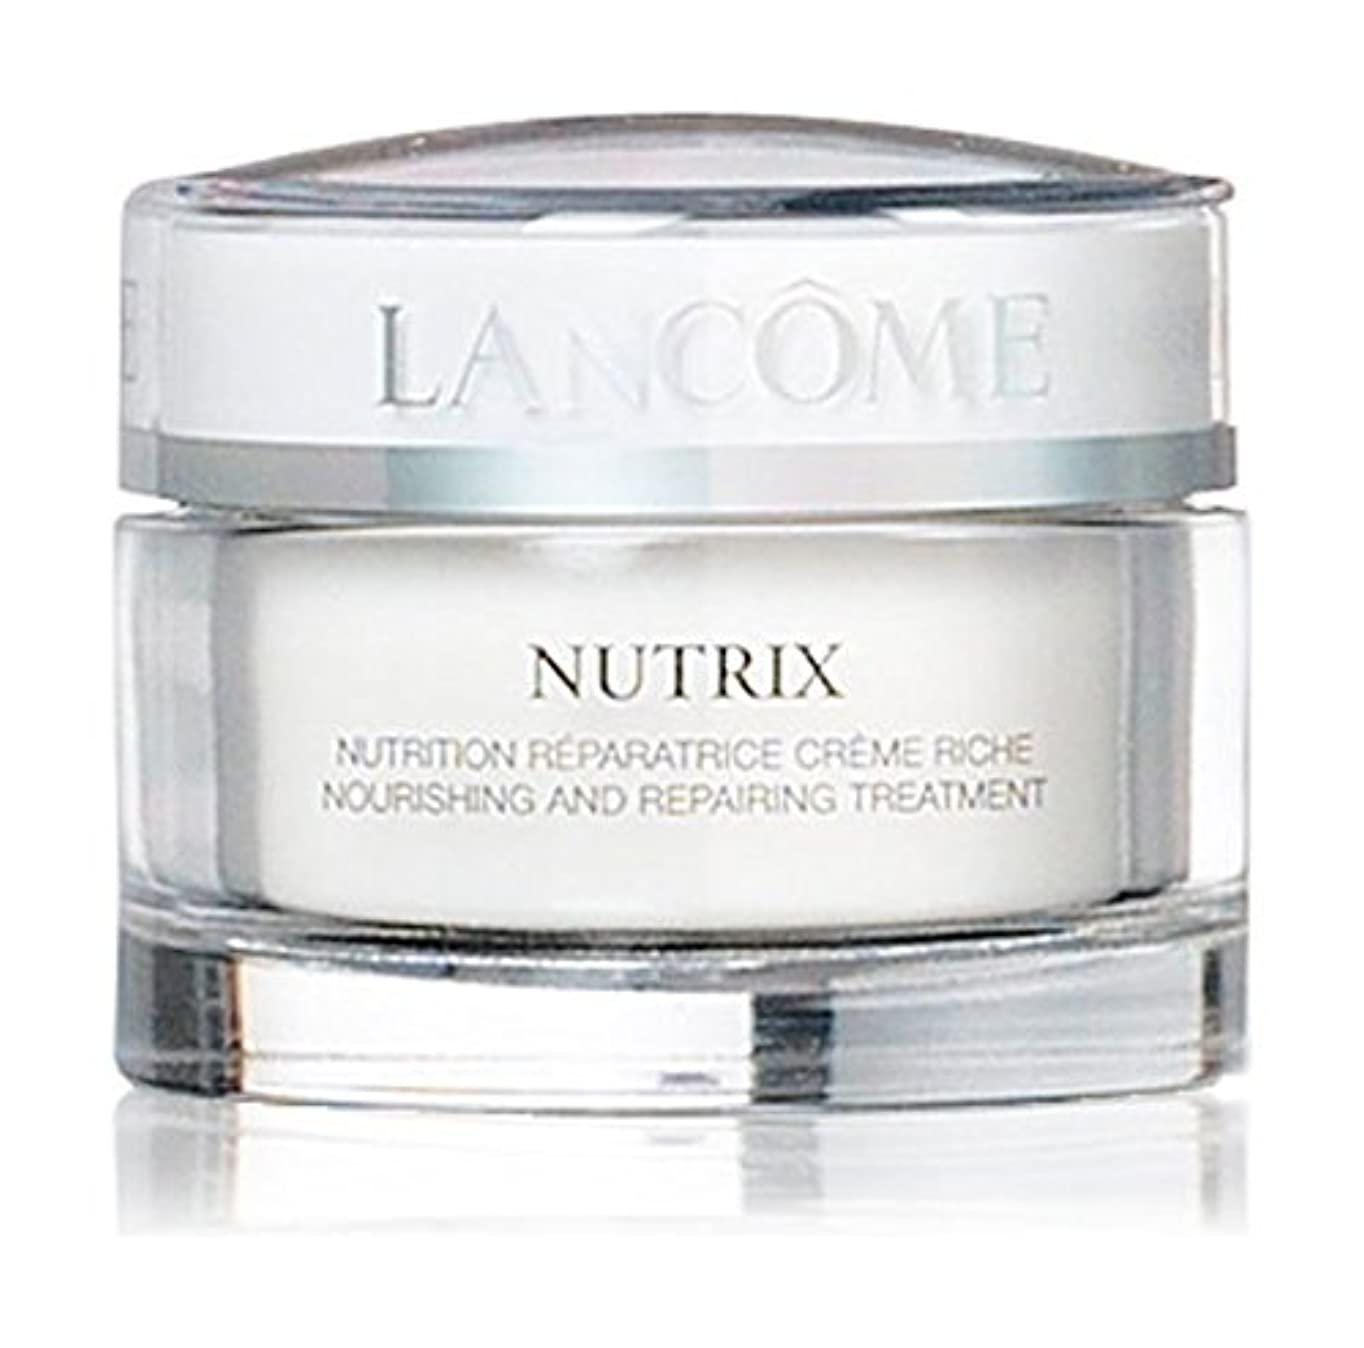 非効率的なかりて訪問ランコム Nutrix Nourishing And Repairing Treatment Rich Cream - For Very Dry, Sensitive Or Irritated Skin 50ml/1.7oz...